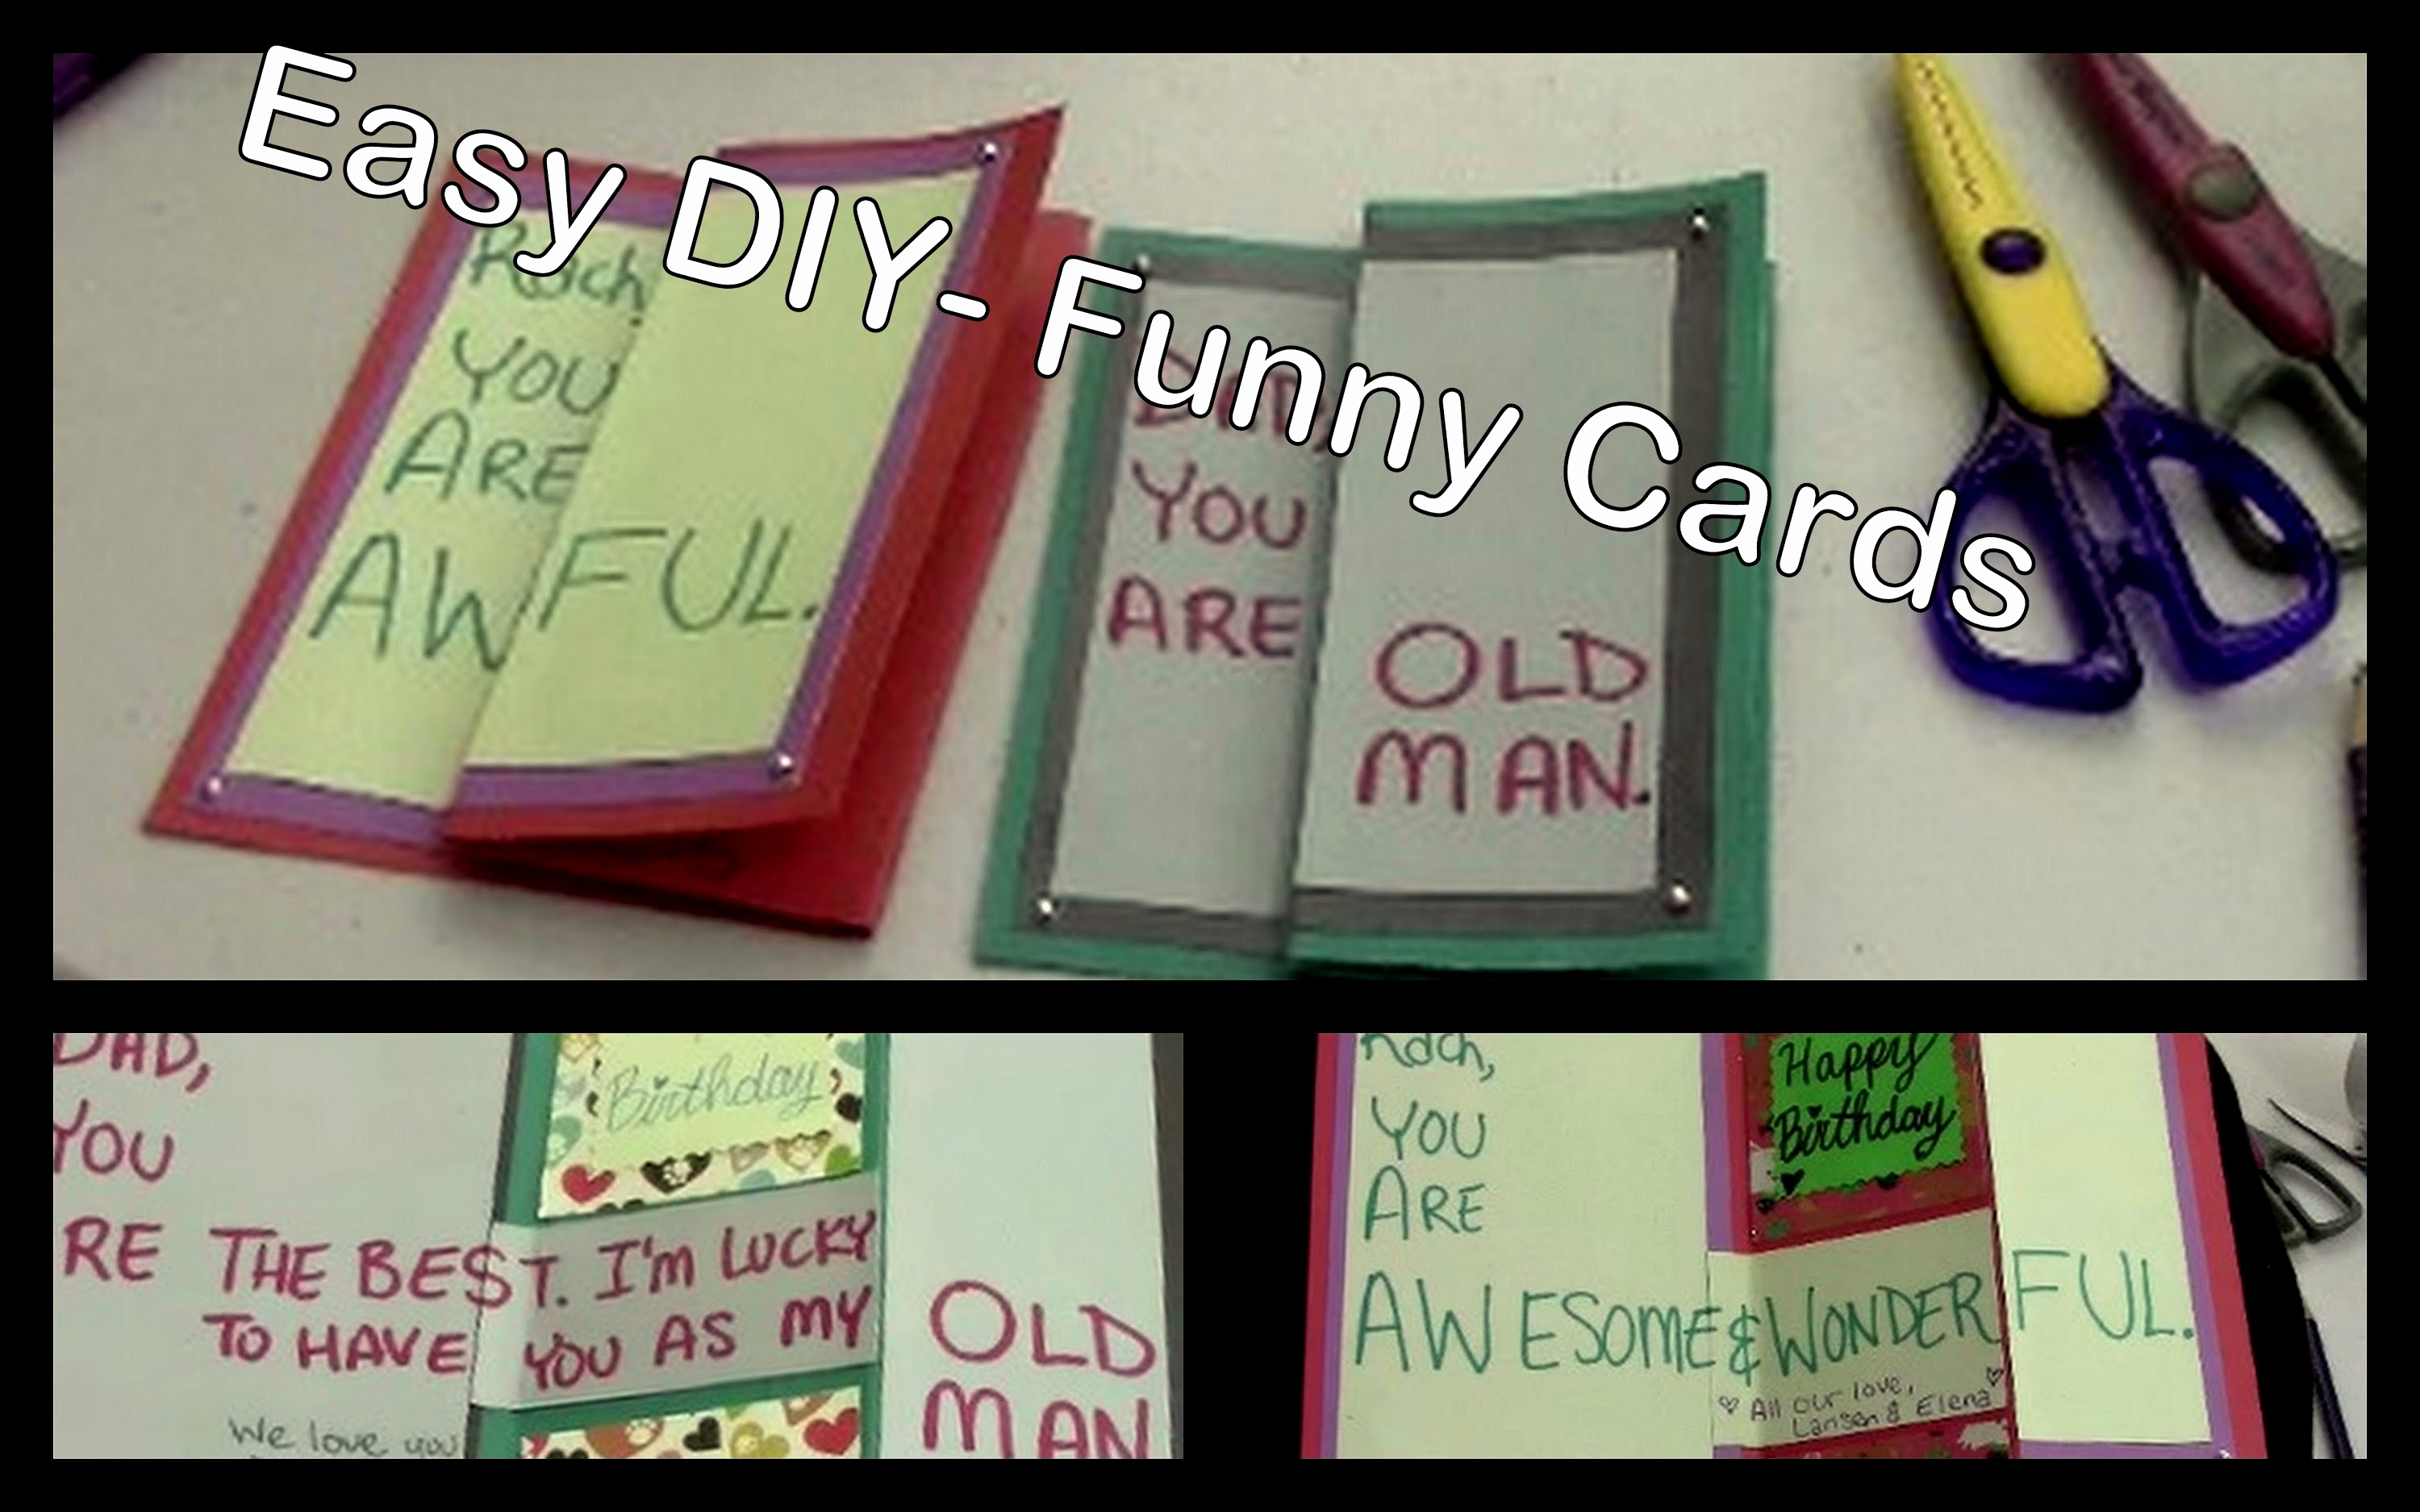 funny homemade birthday card ideas ; funny-homemade-birthday-cards-lovely-diy-funny-birthday-cards-for-friends-amp-family-of-funny-homemade-birthday-cards